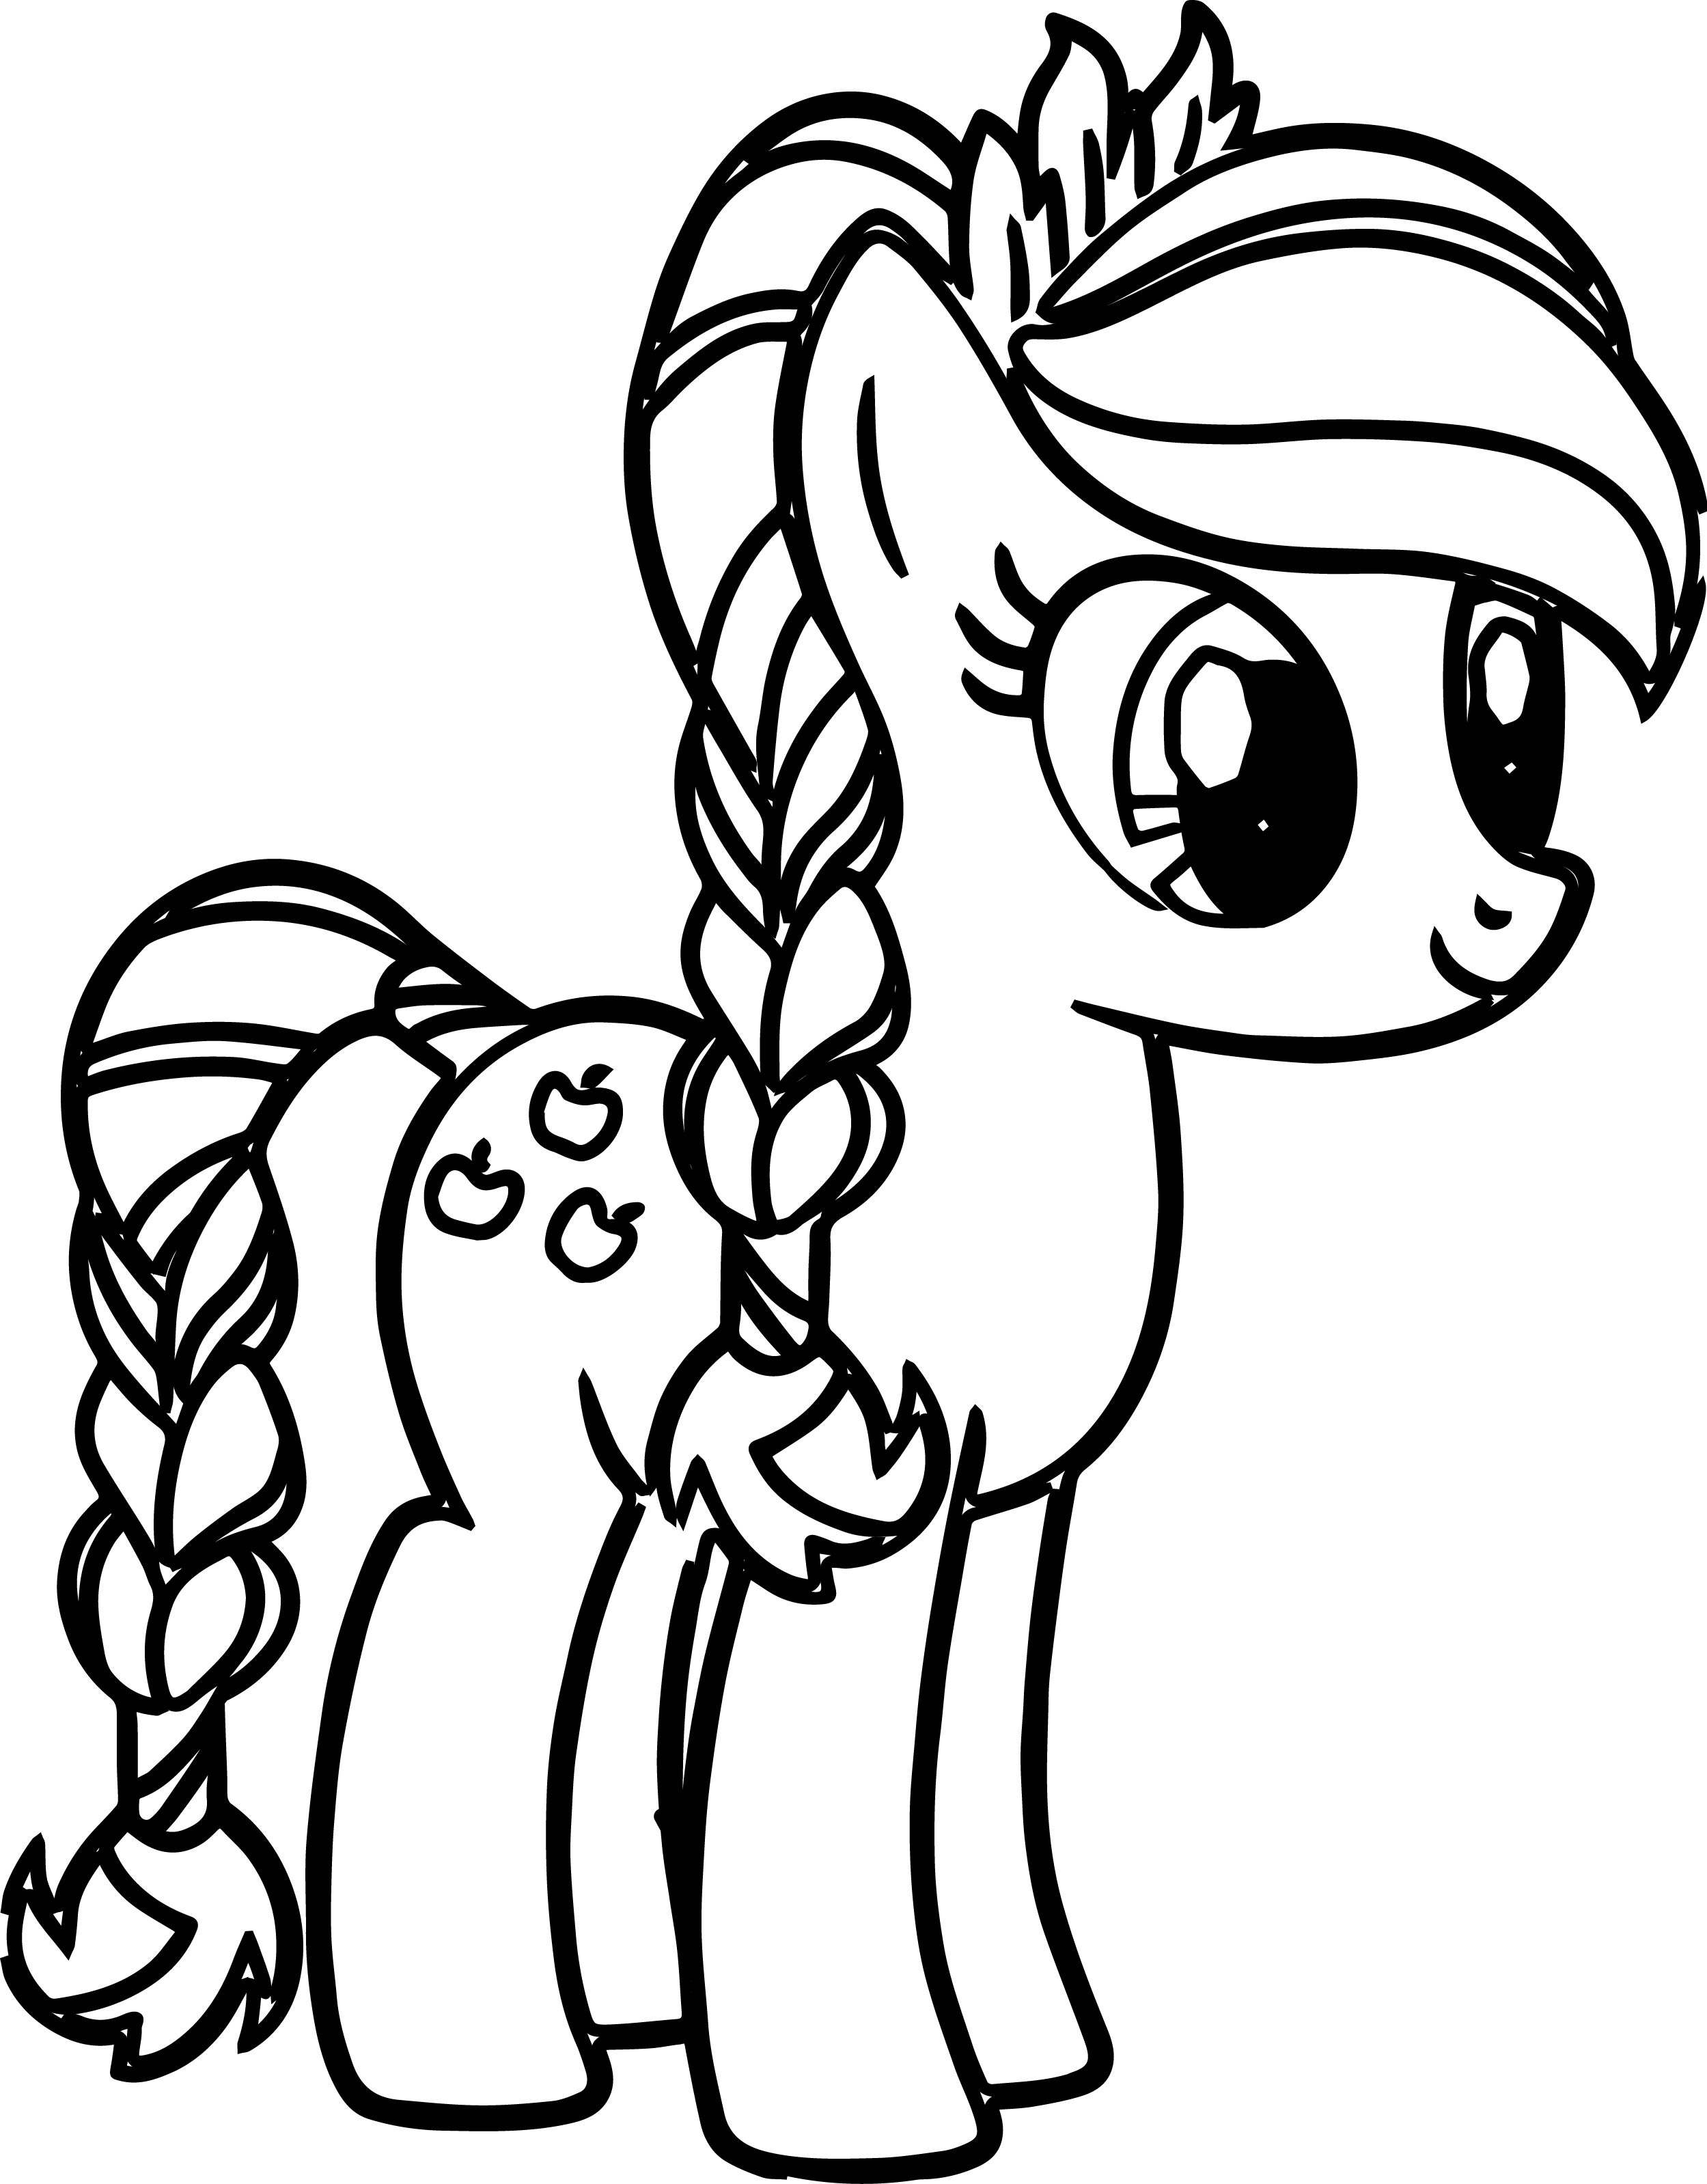 pictures of my little pony to color 23 my little pony coloring pages for girls printable pdfs to color pictures little pony my of